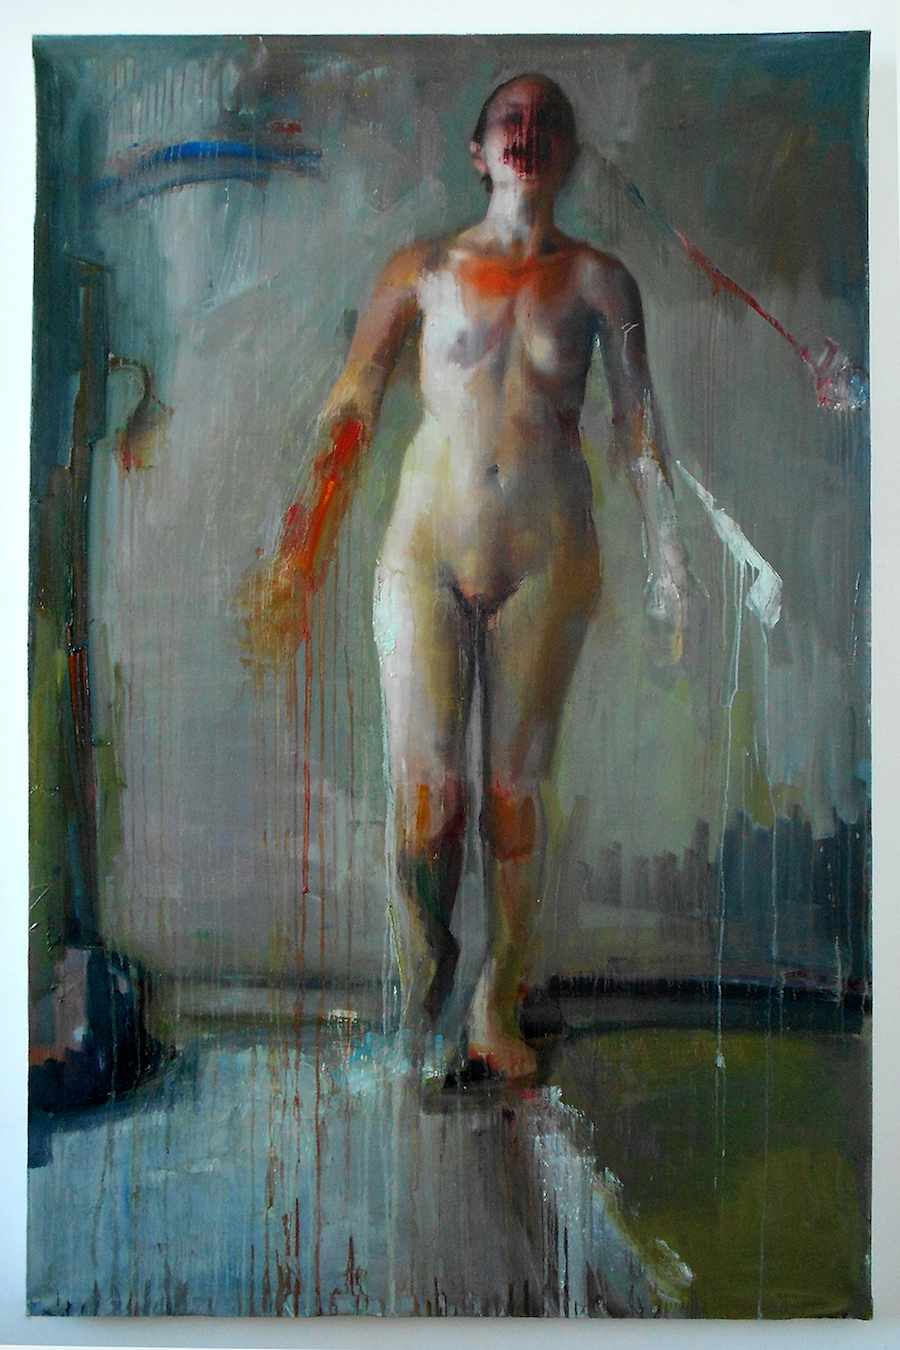 "Beside, untouched, Oil on canvas, H74""xW48"", 2011"